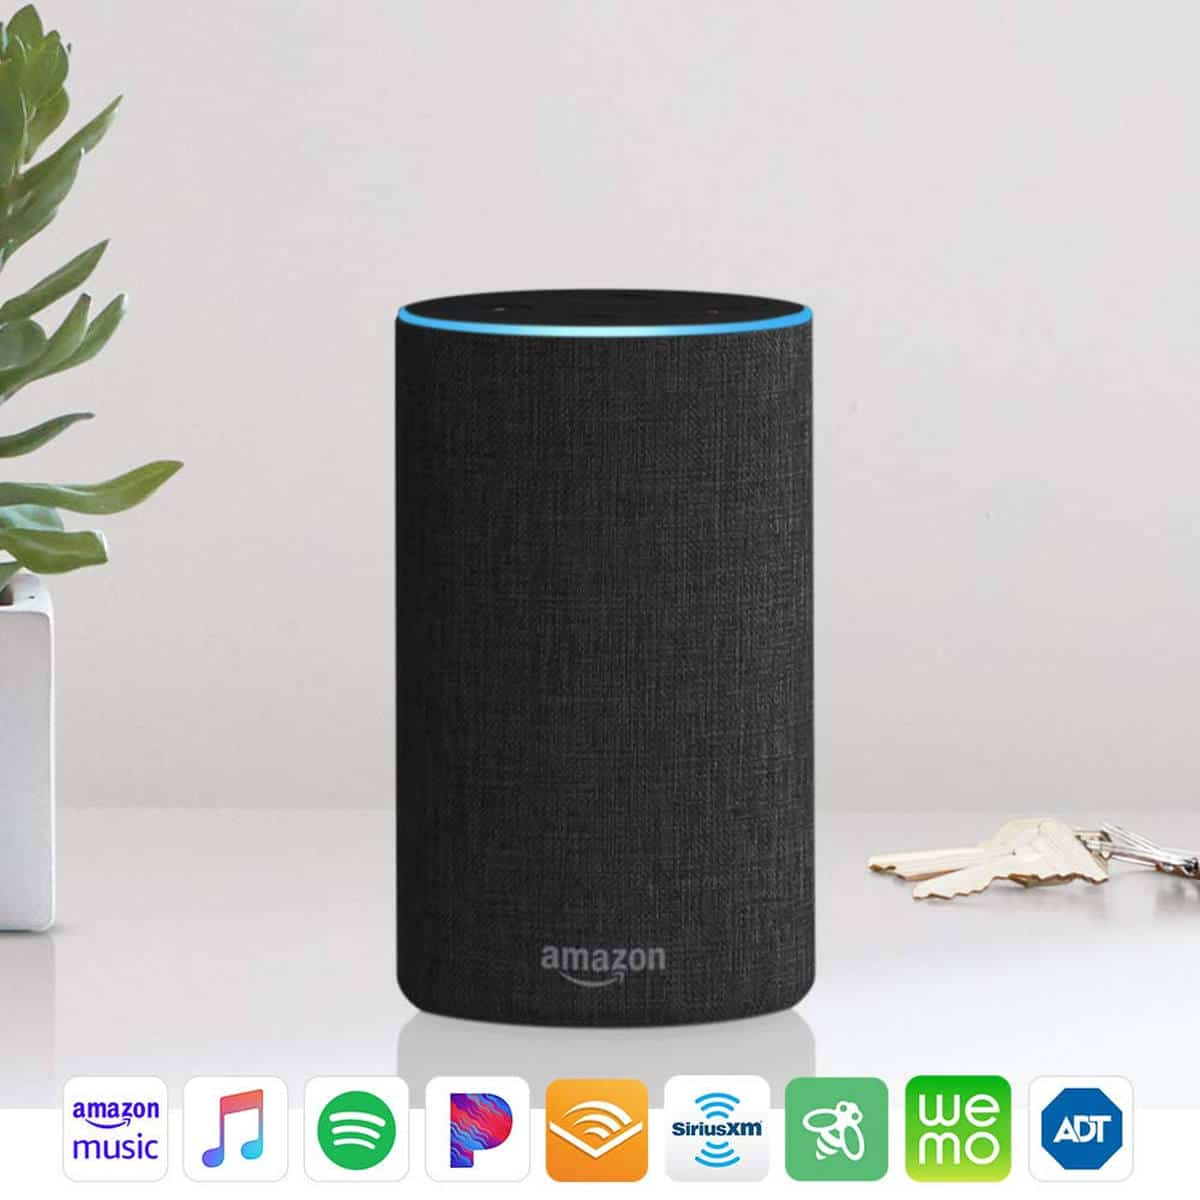 2nd Gen Echo Smart Speaker with Alexa | Top Selling Products On Amazon You Need To Check Out ASAP